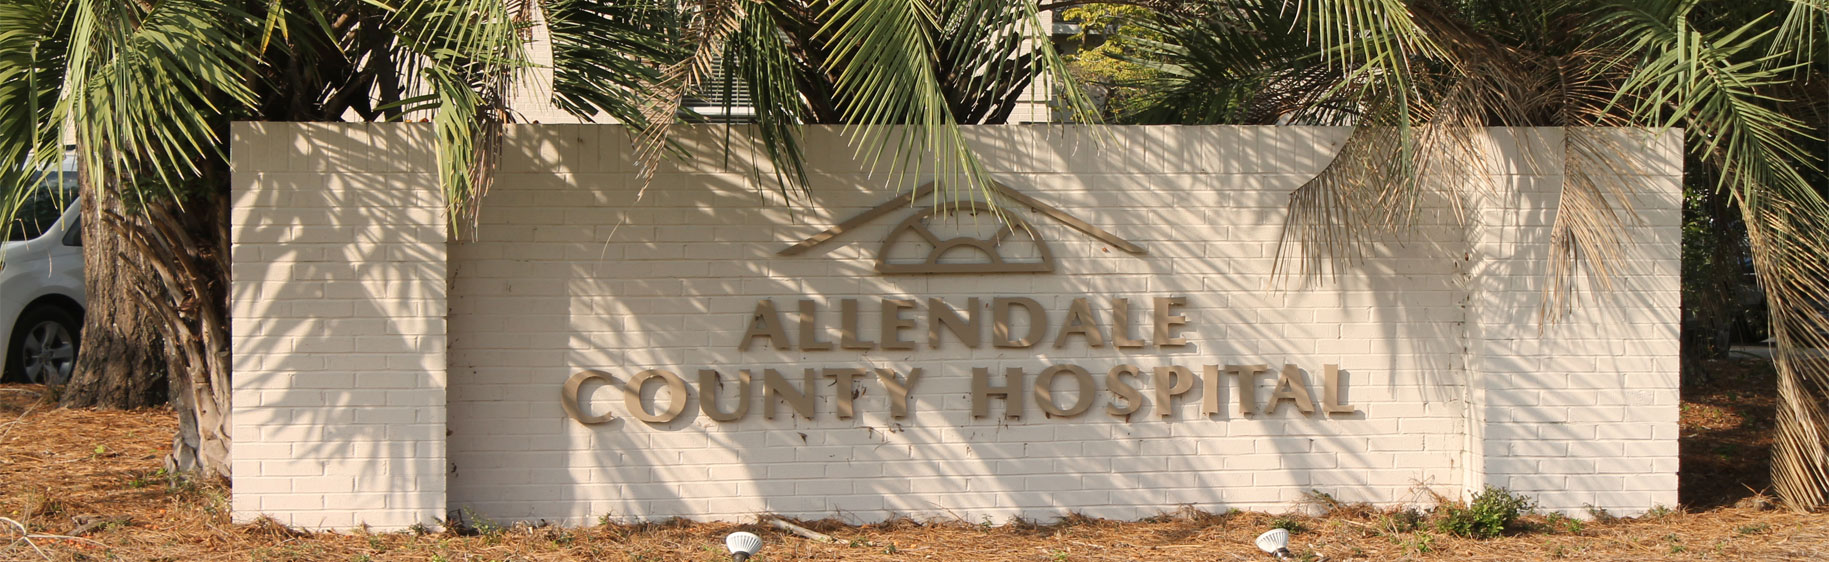 Allendale County Hospital Sign